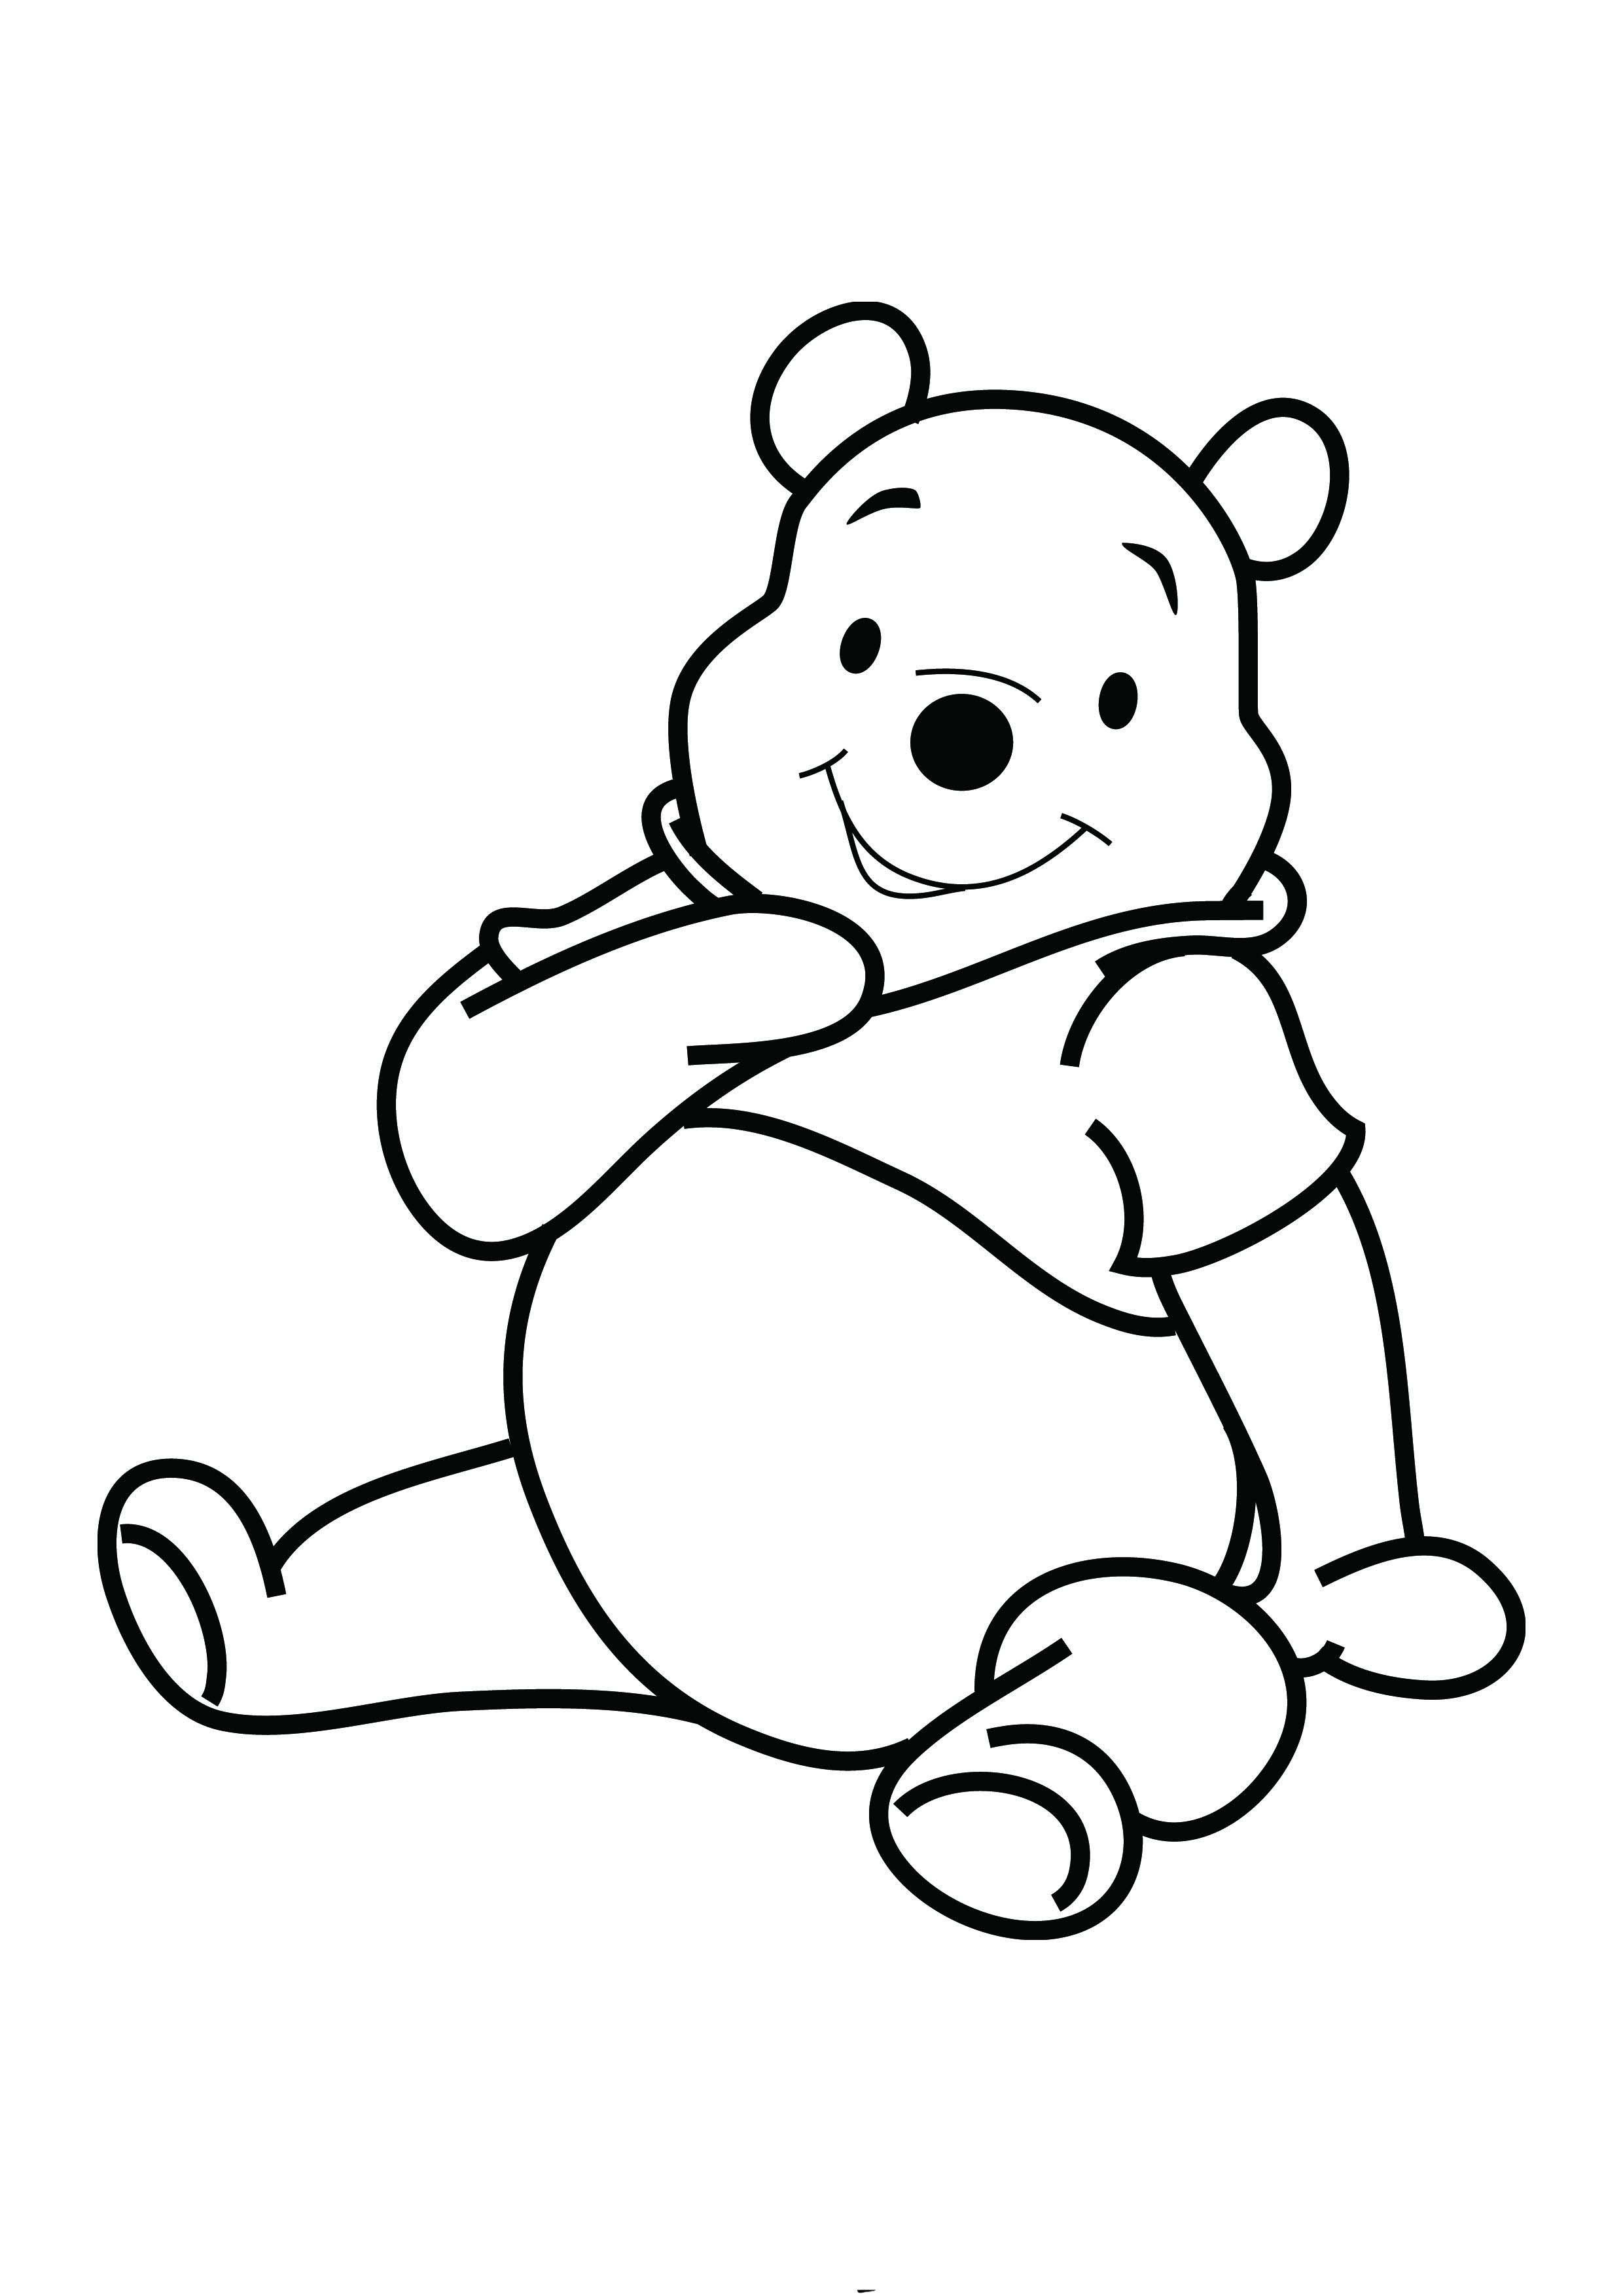 Winnie The Pooh Smile Coloring Picture For Kids With